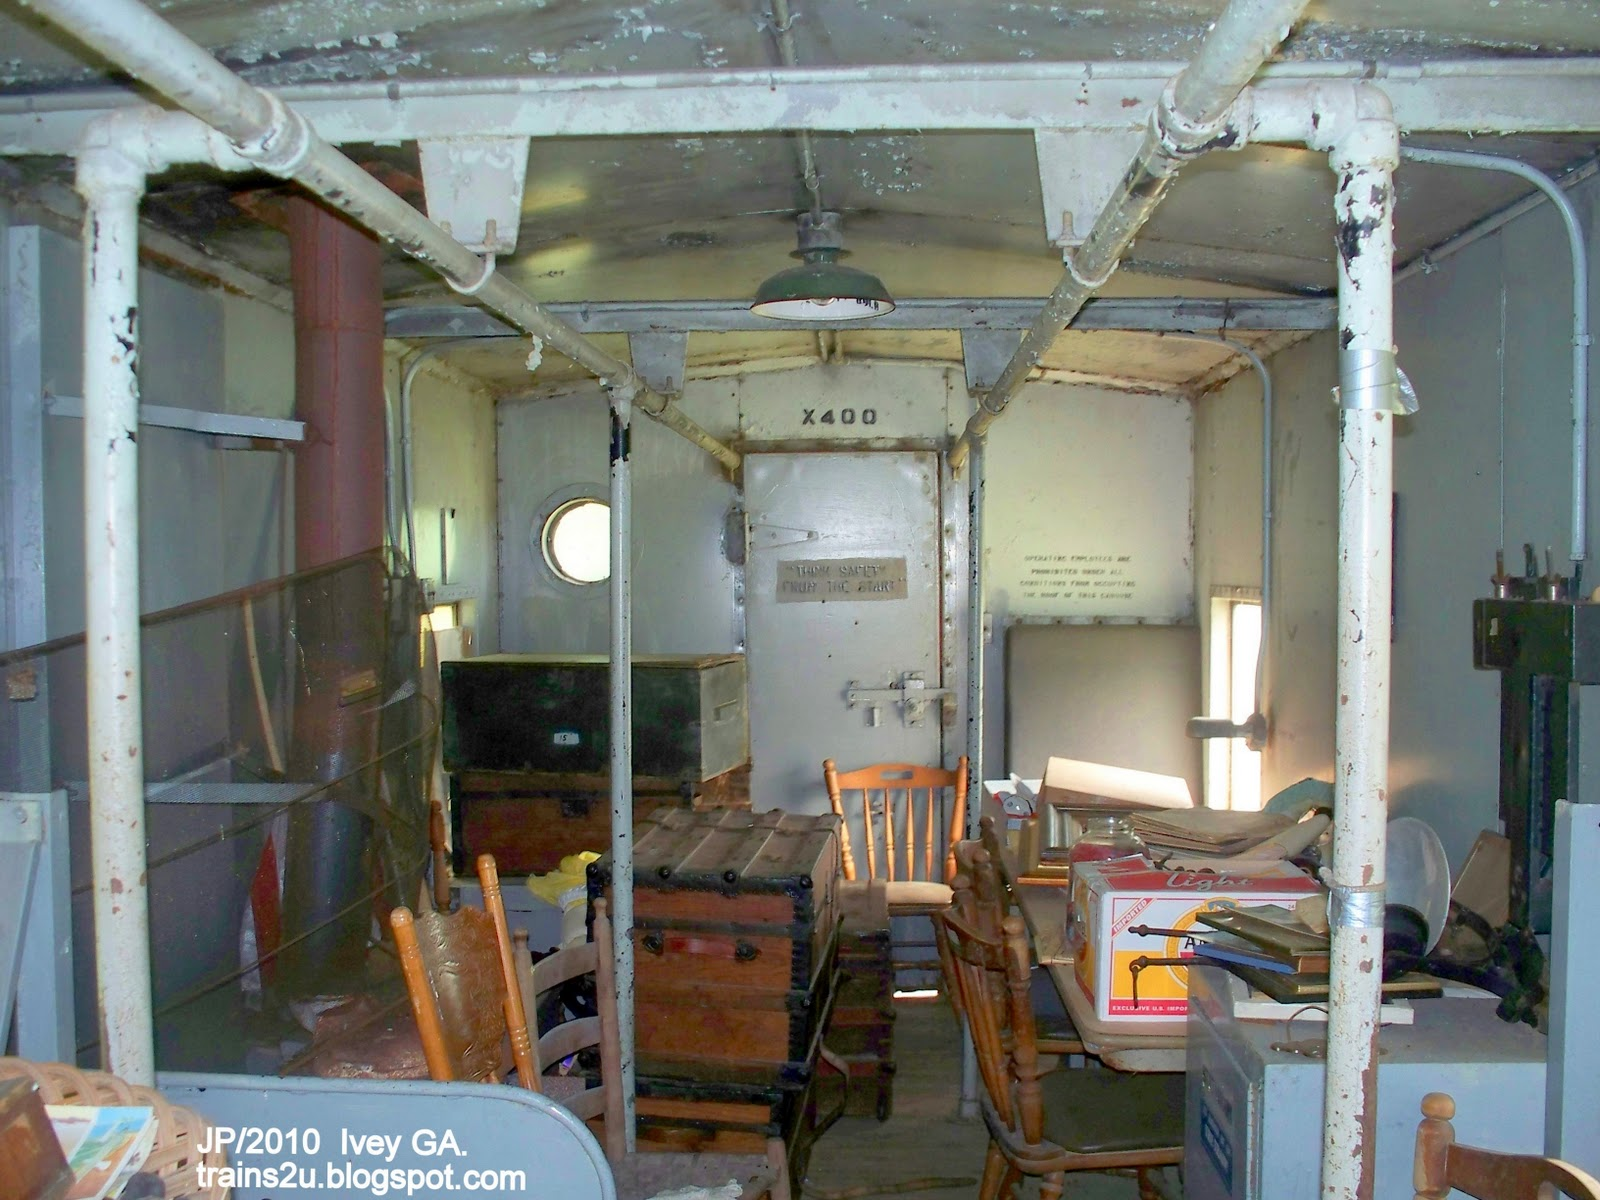 Railroad Caboose Interior http://railroadstrains.blogspot.com/2010/06/railroad-caboose-pictures-x-400-caboose.html